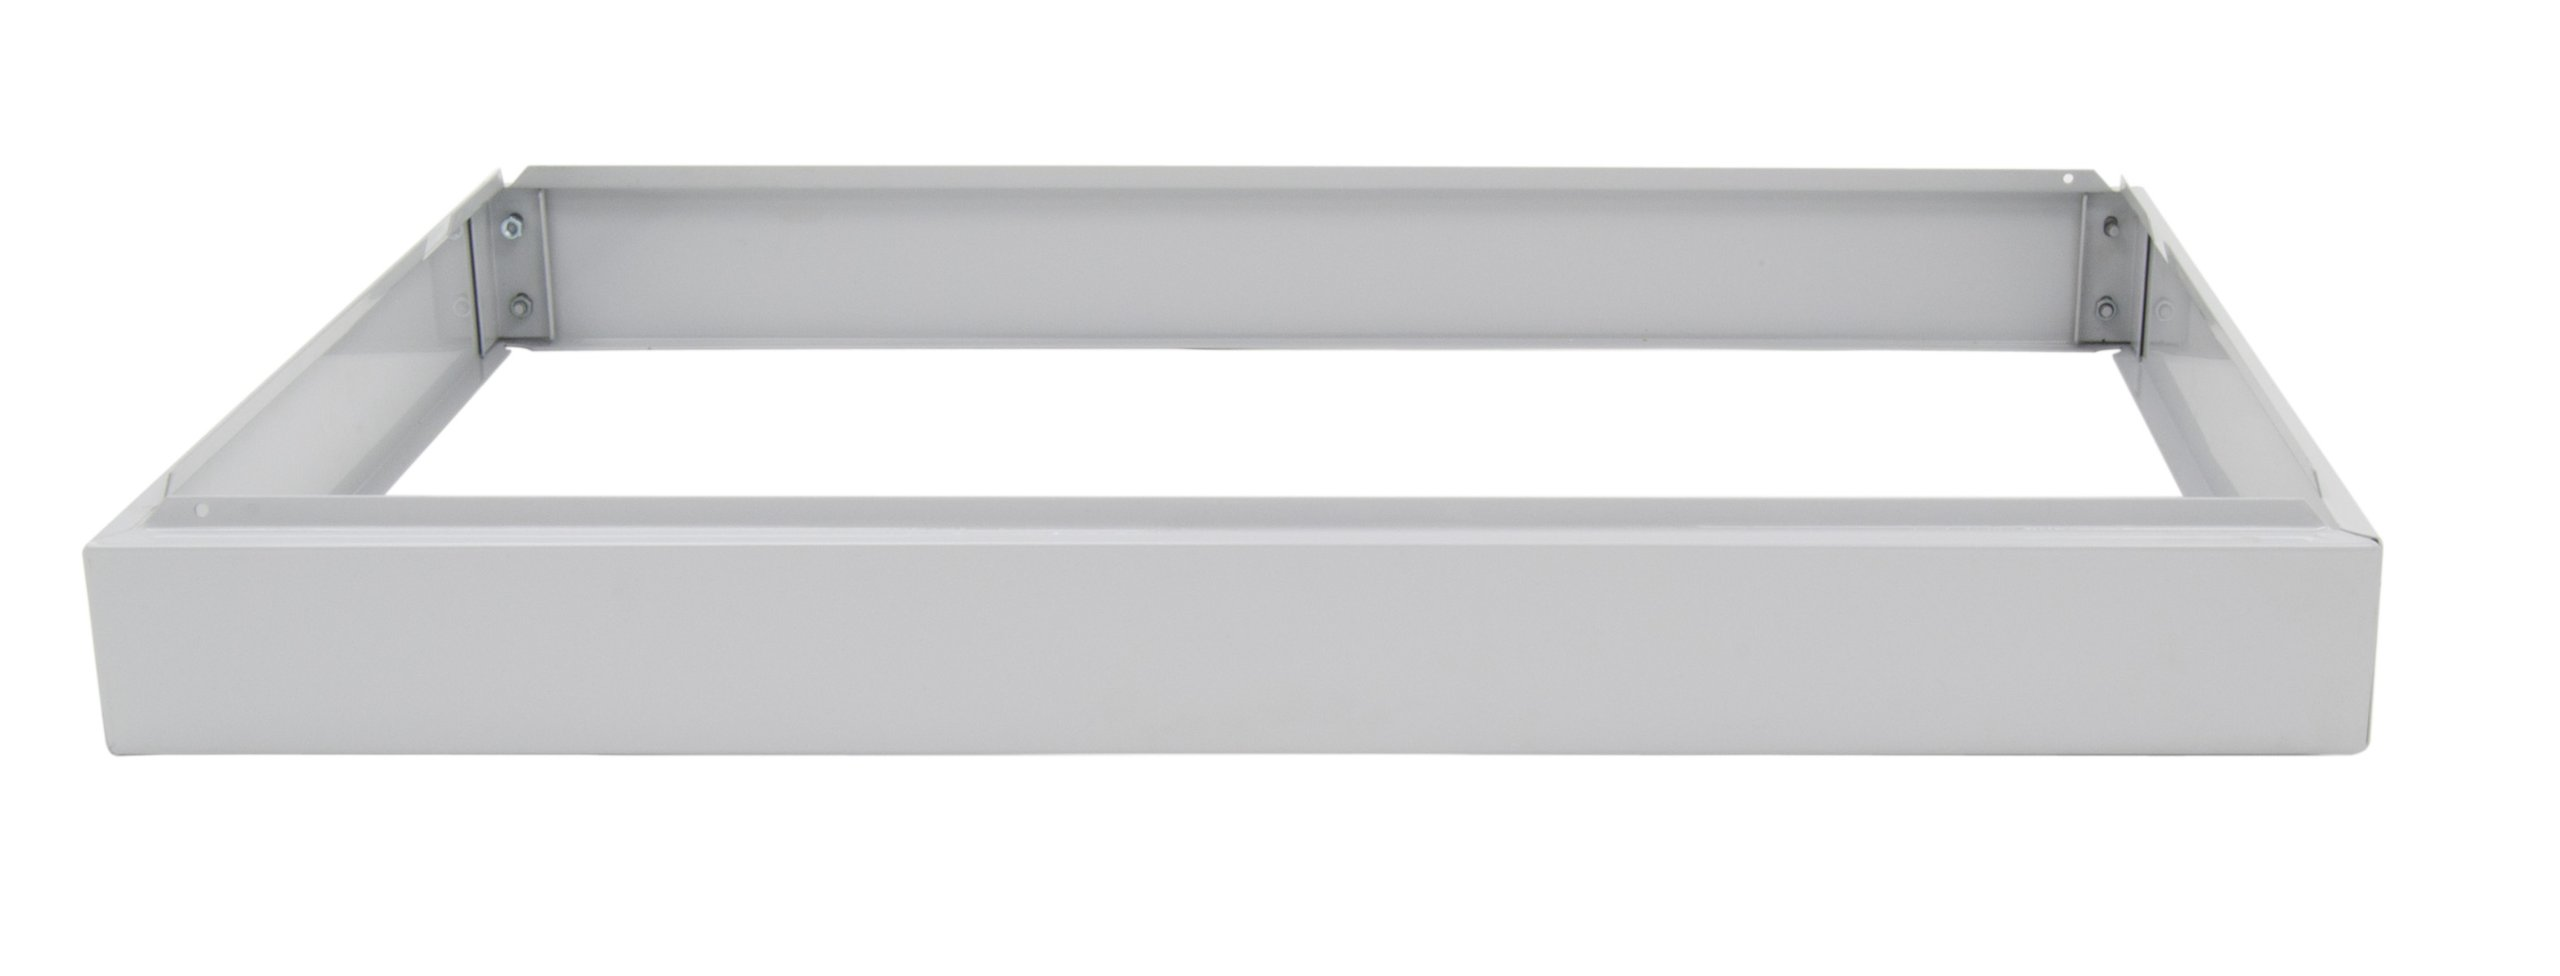 Studio Designs Flat File Riser in Light Grey 40.75 inches wide by 28.5 inches deep 60725